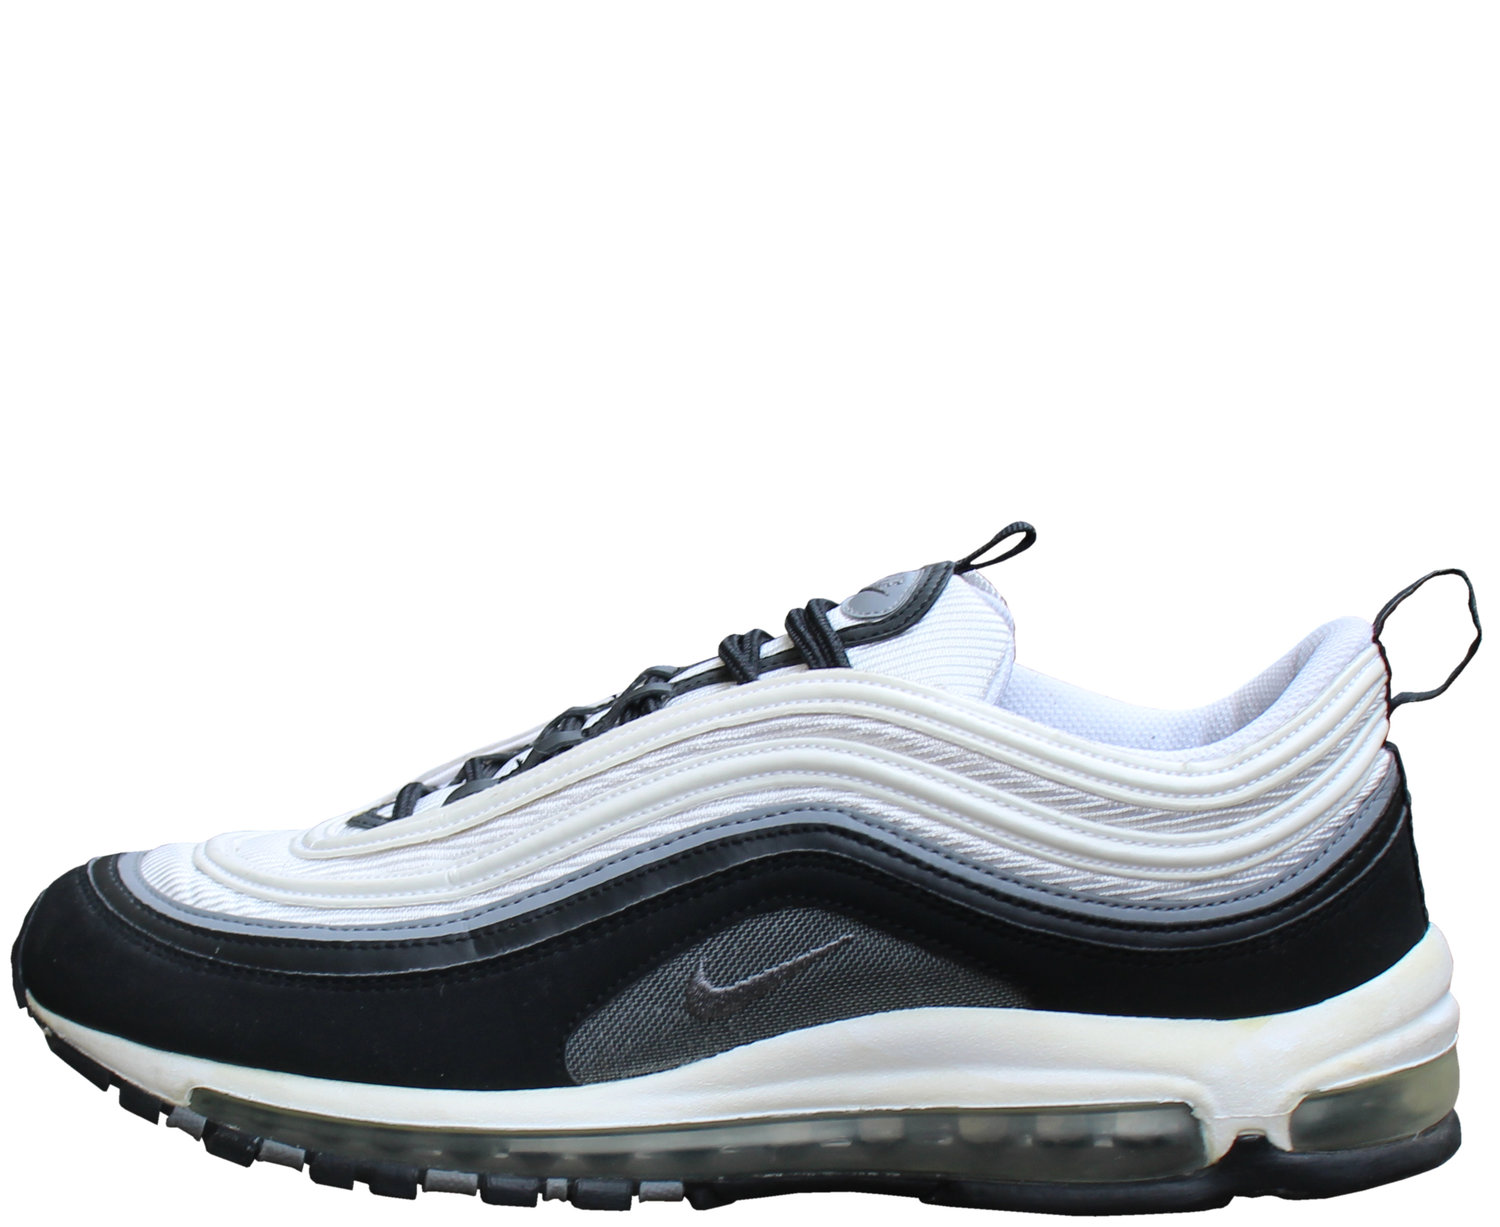 Nike Air Max 97 Black Cool Grey White Size 11 Roots